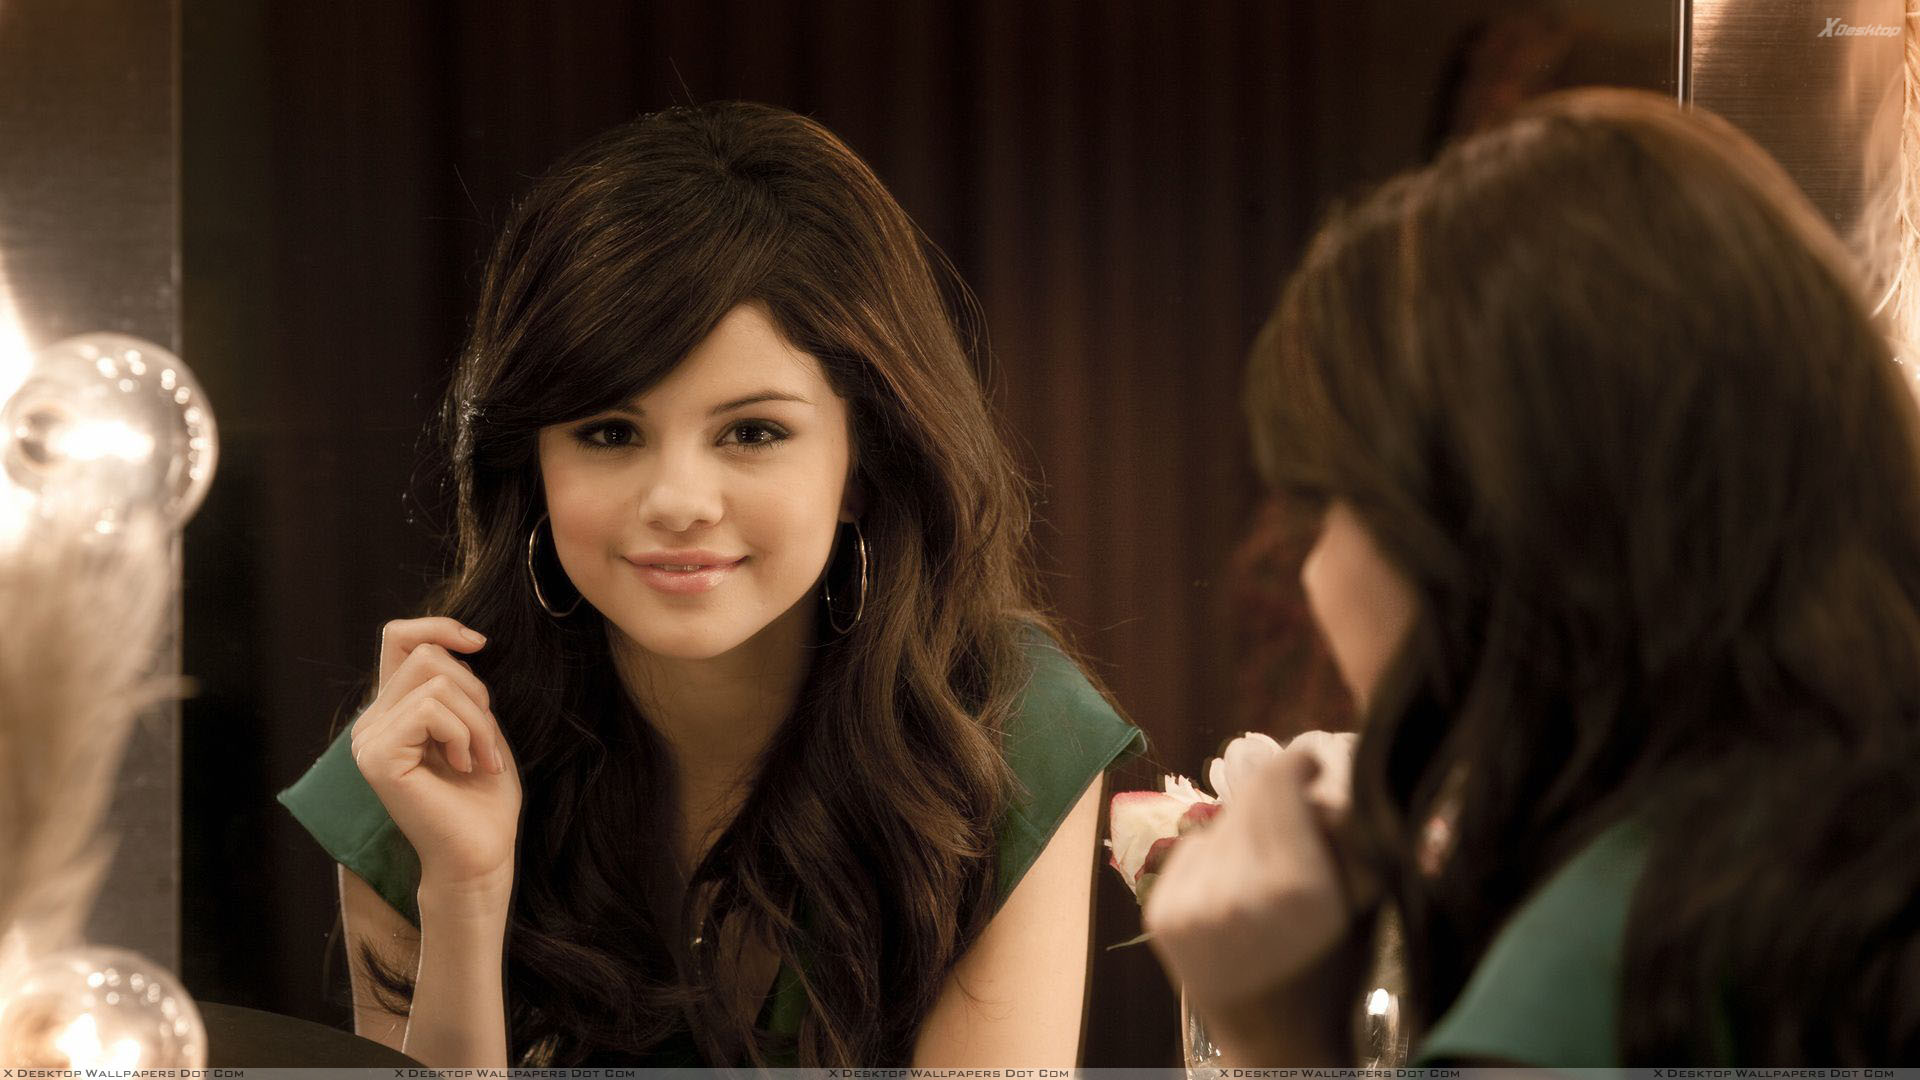 selena gomez sweet smiling face front of miror wallpaper